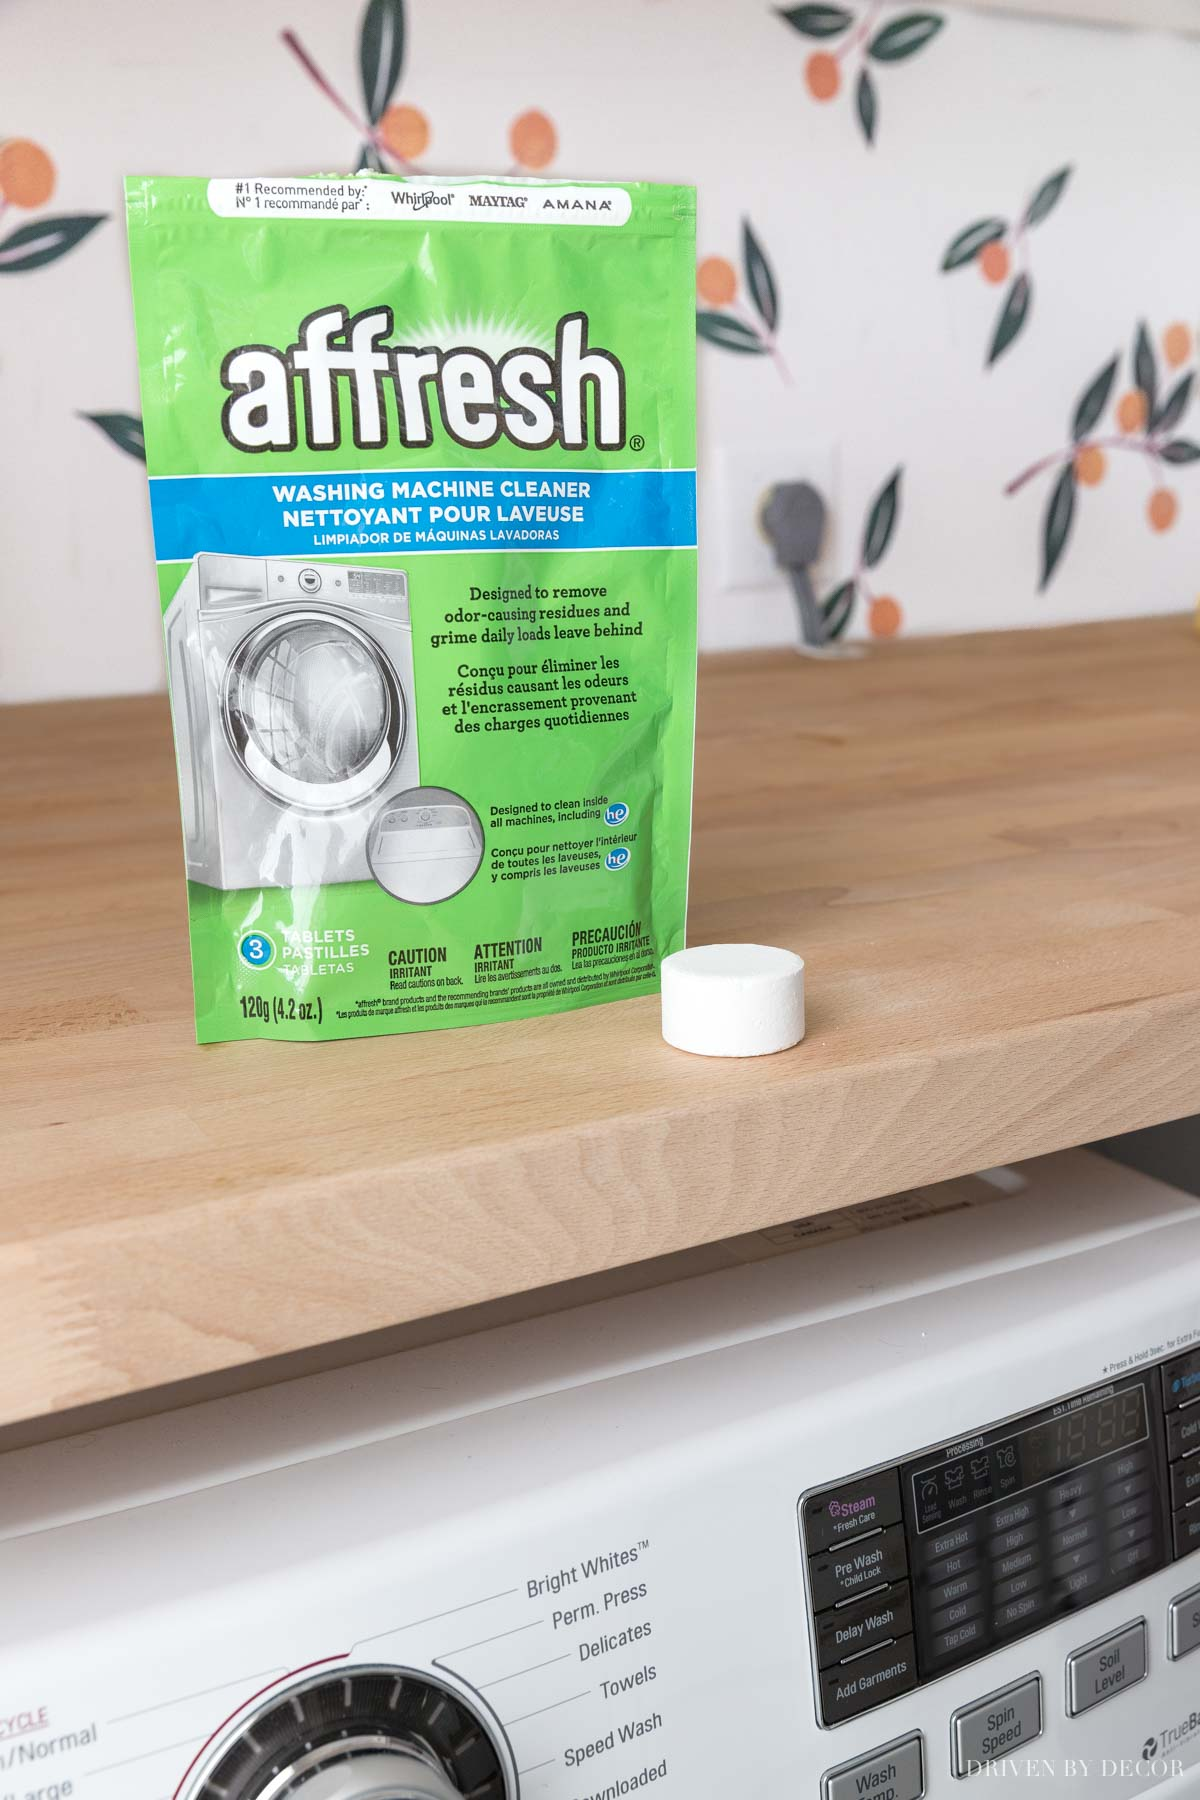 My favorite washing machine cleaning tablets!